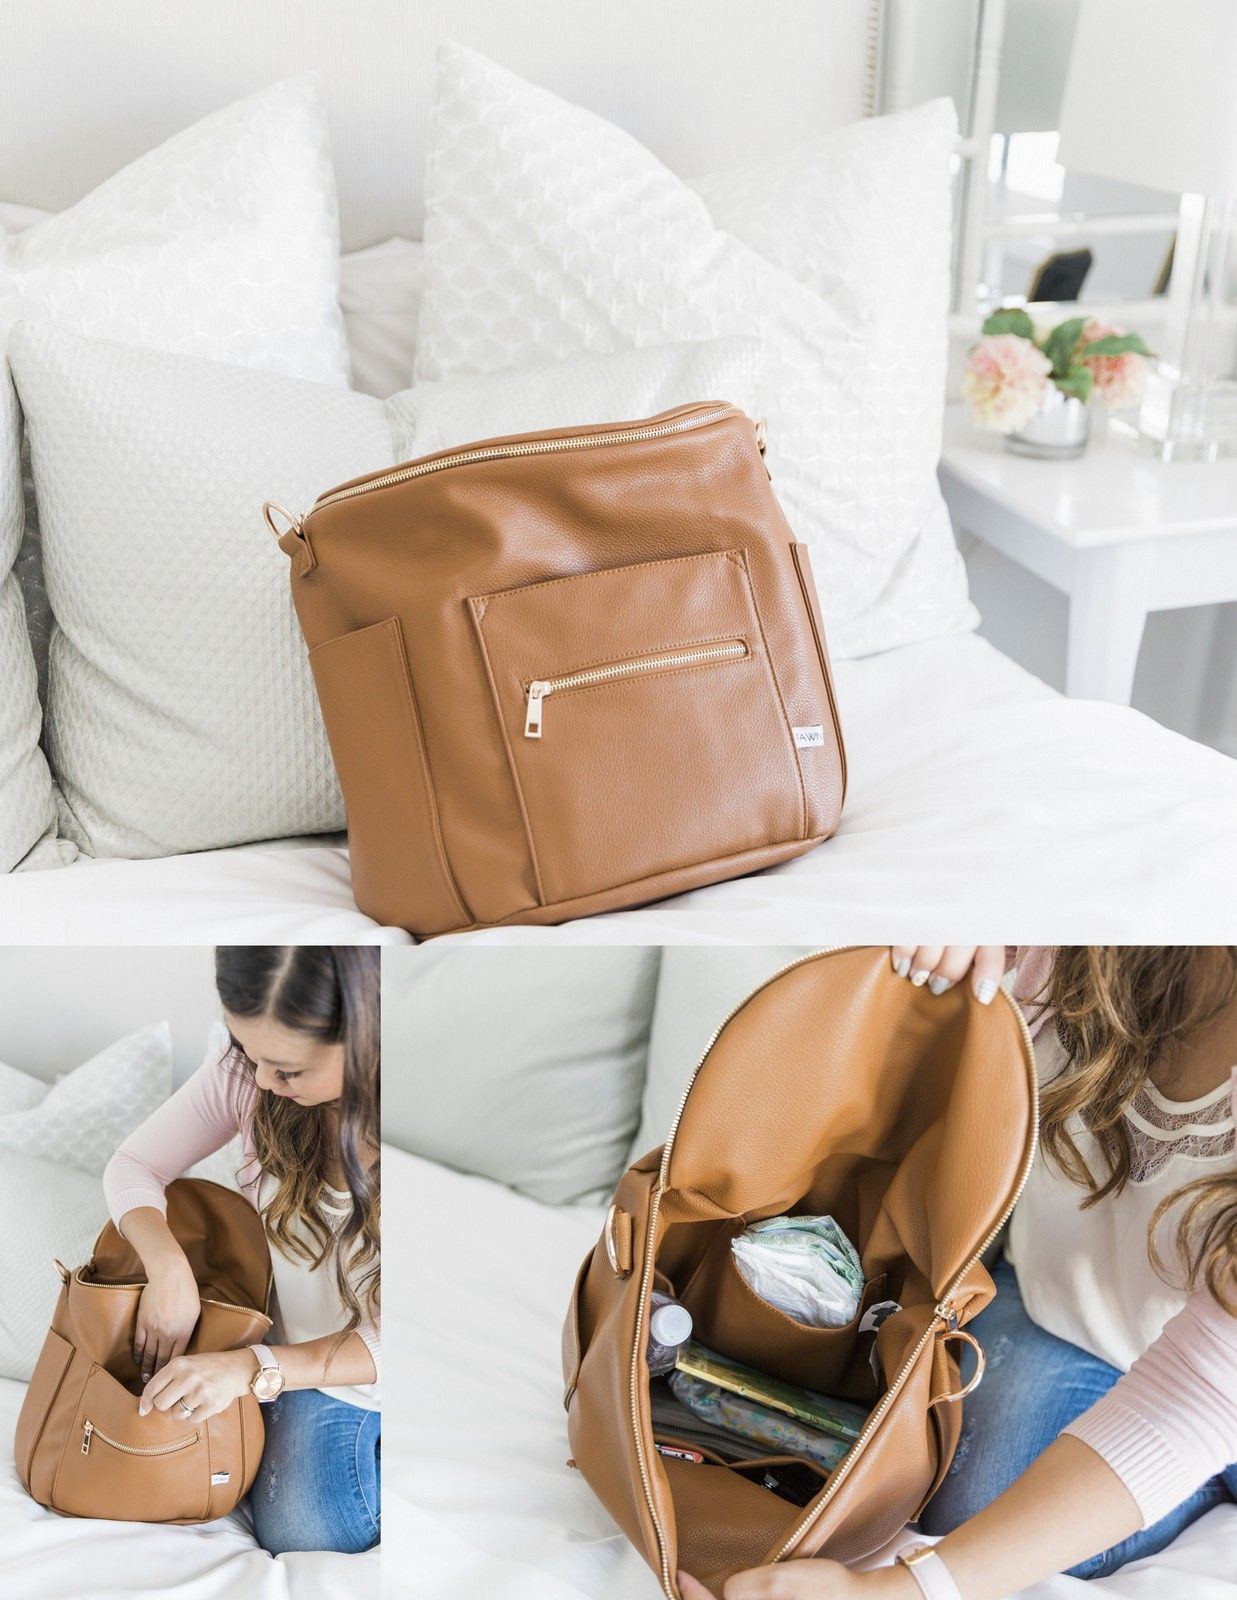 The Ultimate Stylish Diaper Bag Guide